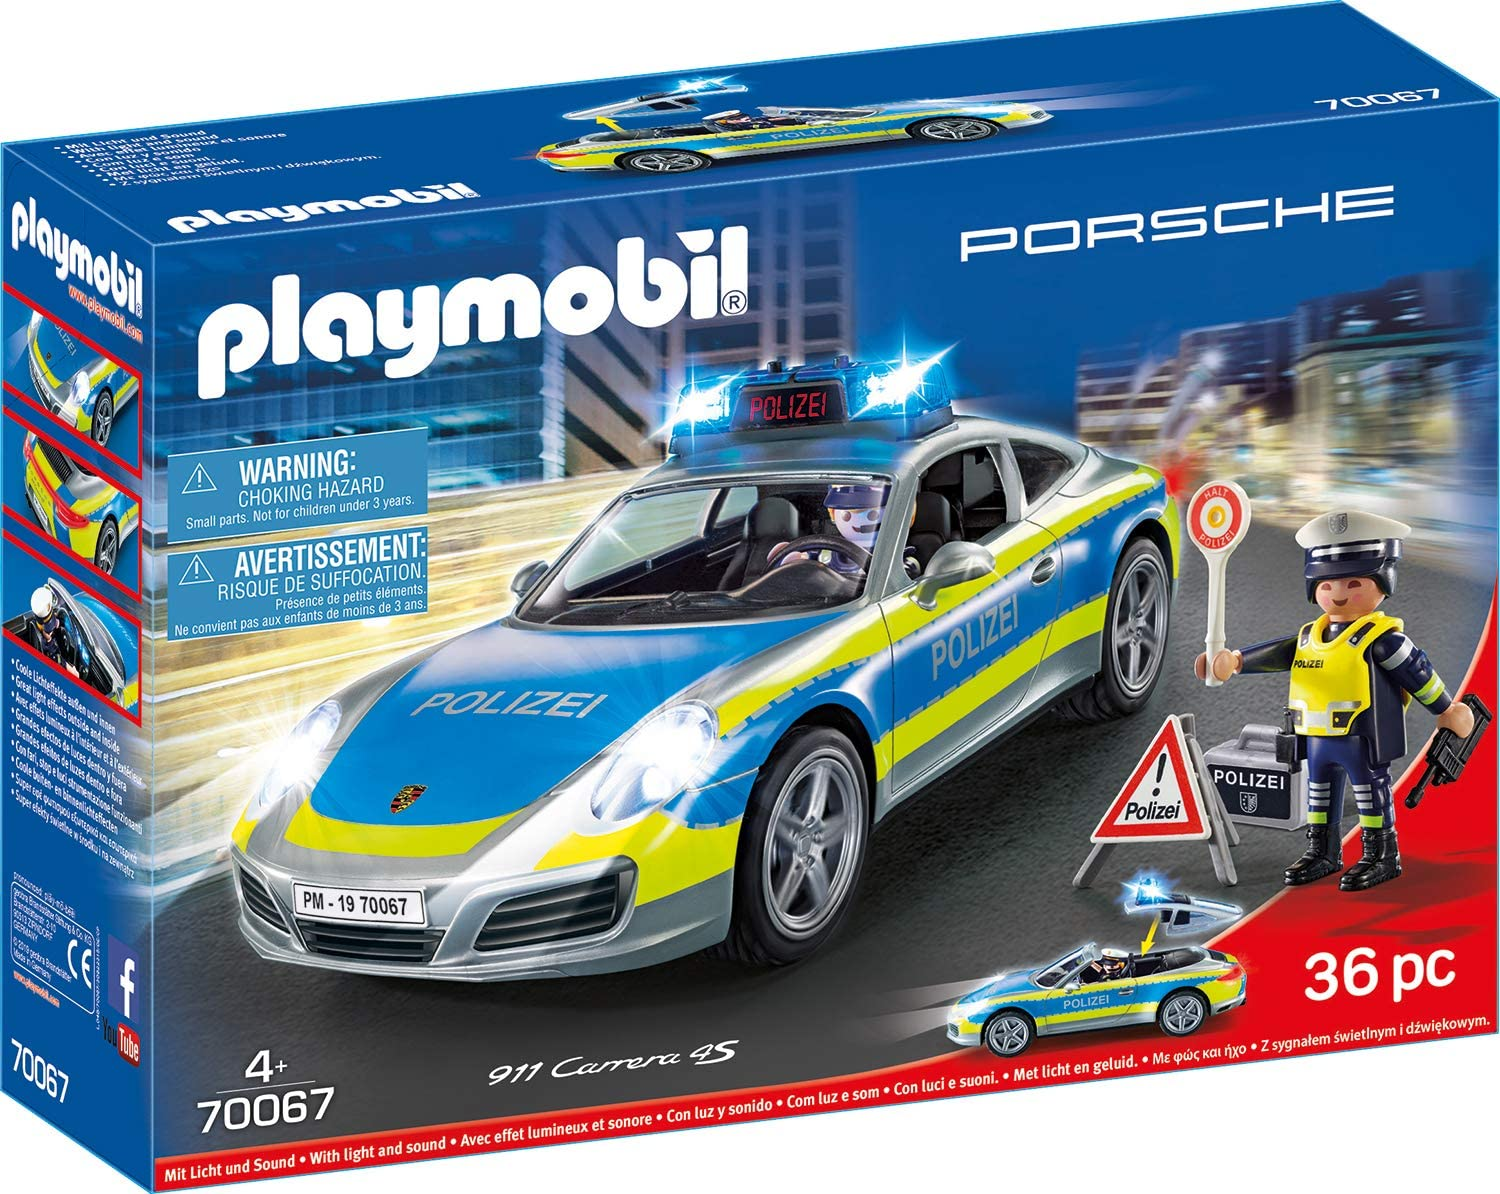 PLAYMOBIL- City Action Porsche 911 Carrera 4S - Figura de policía, Color carbón (70067)